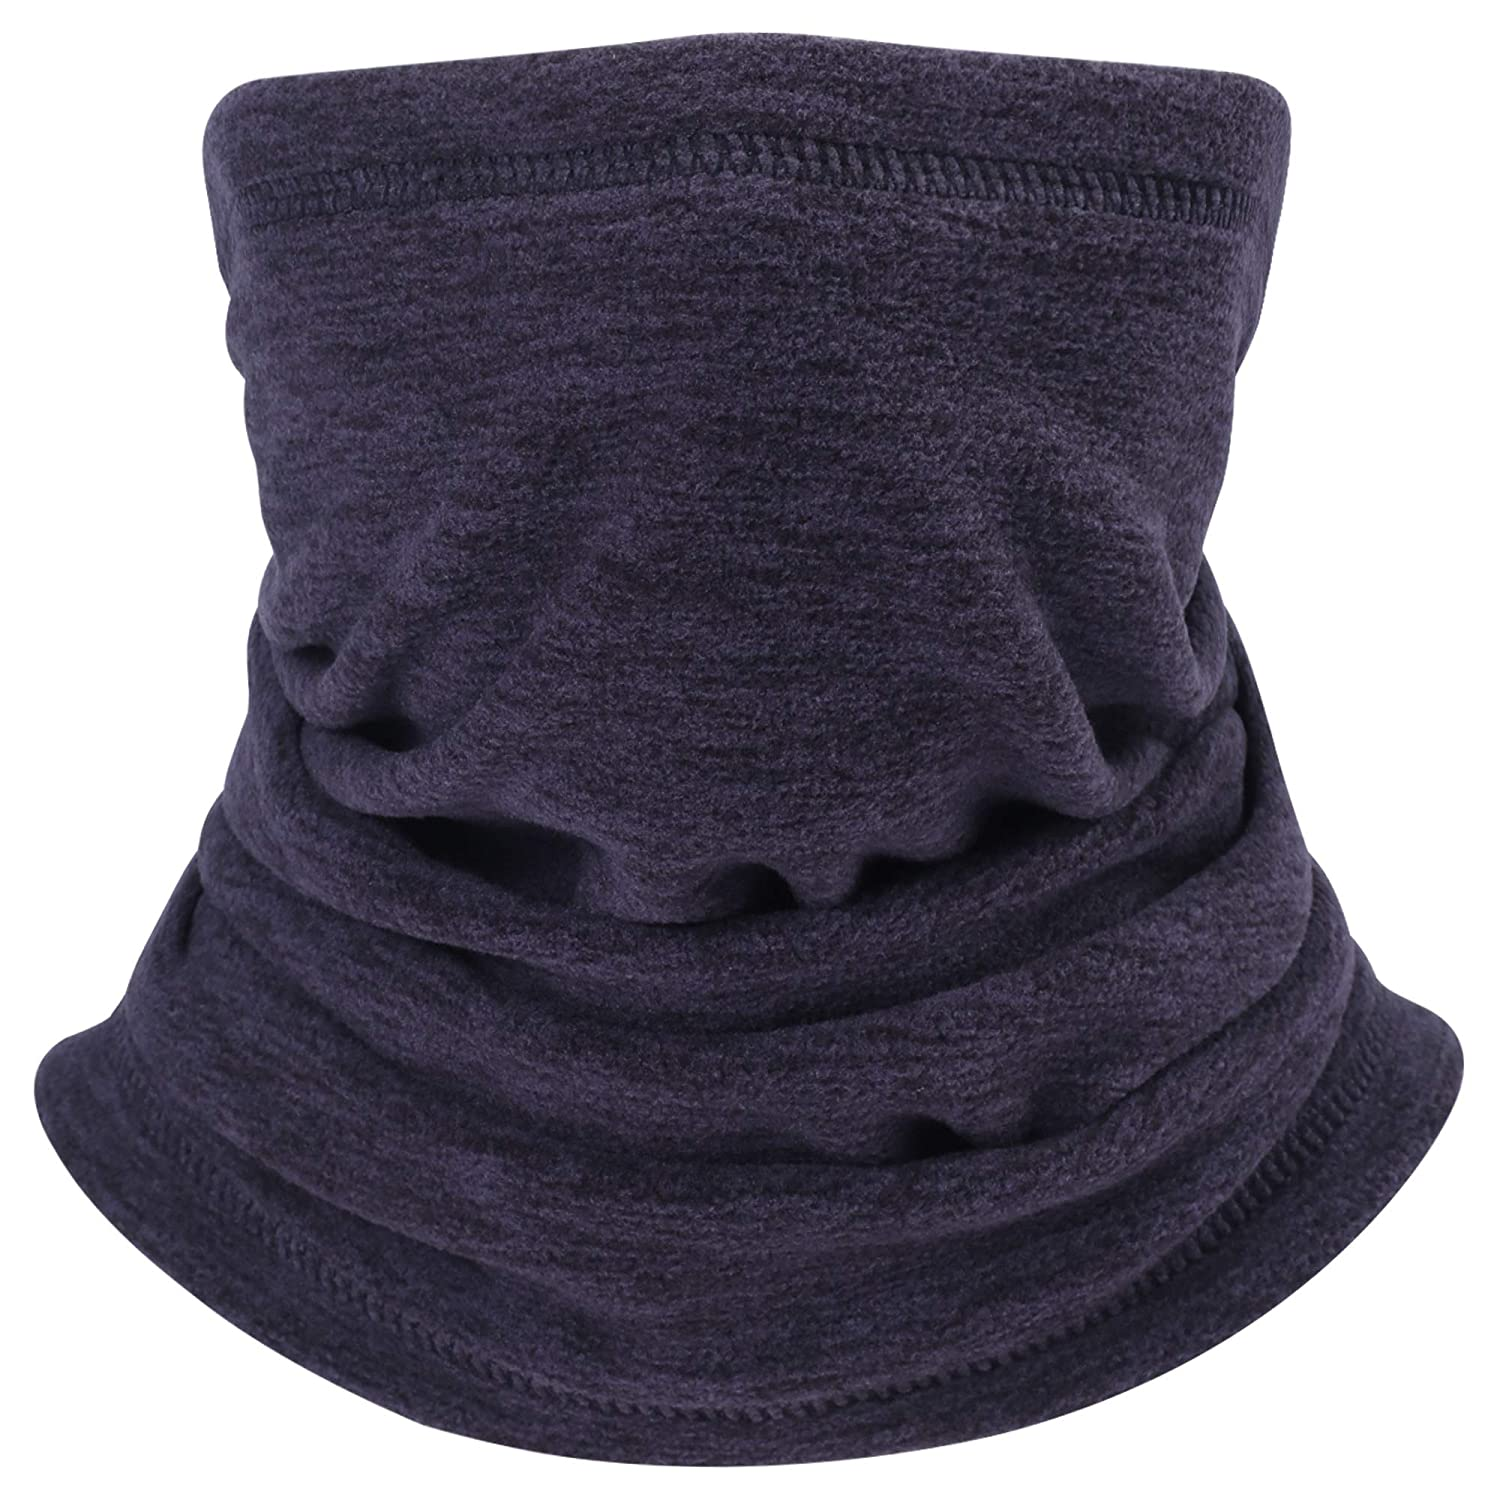 Fleece Neck Warmer Scarf for Men Women, Wind & UV Protective Face Mask for Winter WZHENH